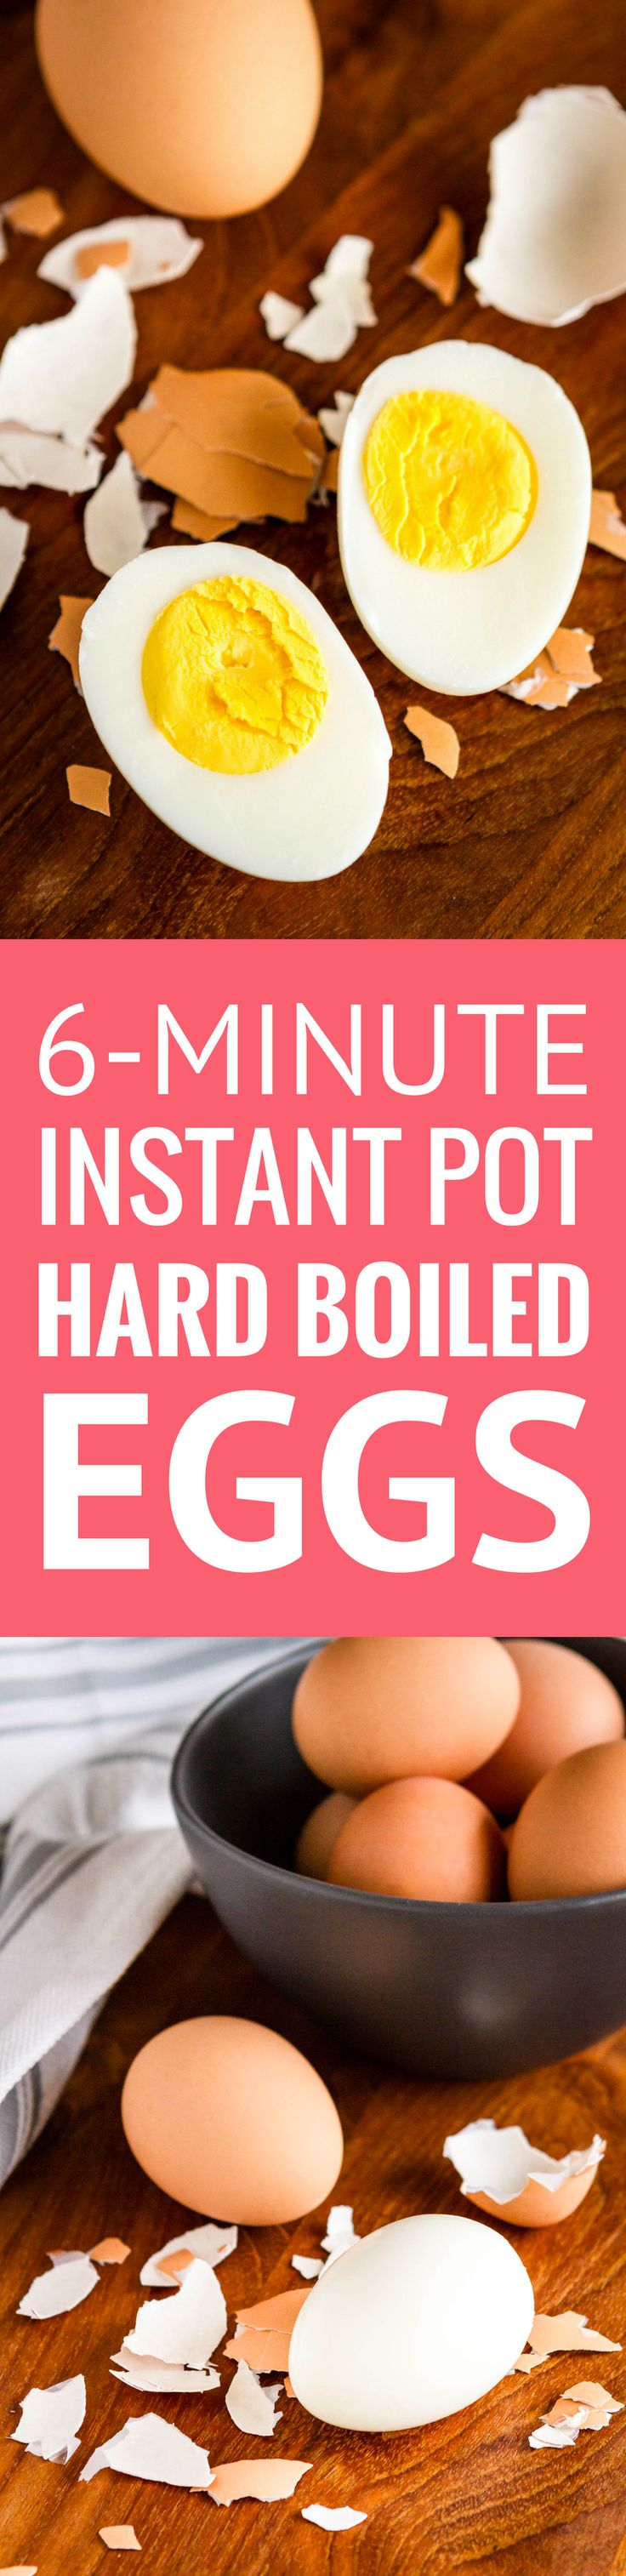 Instant Pot Hard Boiled Eggs -- these Instant Pot eggs turn out *amazing* every time! They're easy to peel, perfectly cooked and never have those icky green yolks... This is the perfect recipe for learning how to use your new electric pressure cooker! | instant pot recipes | meal prep ideas | whole 30 recipes easy | whole 30 eggs | 21 day fix recipes | find the recipe on unsophisticook.com